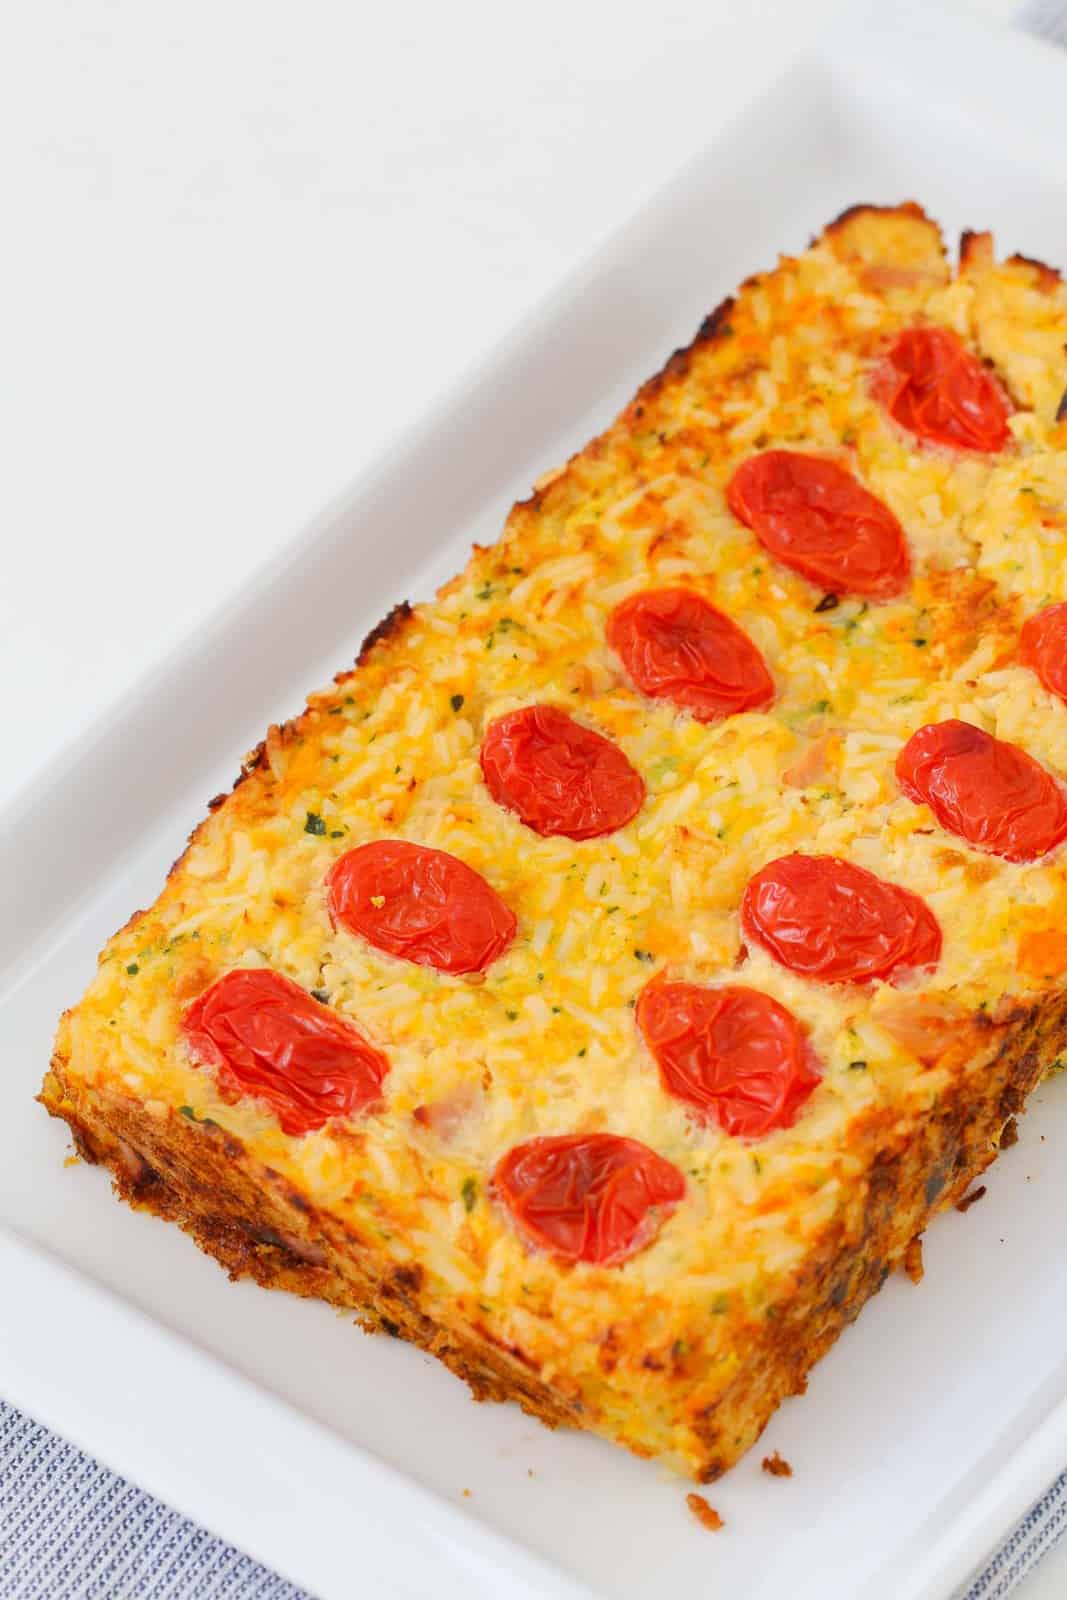 A vegetable and rice loaf with cherry tomatoes on top, served on a white plate.